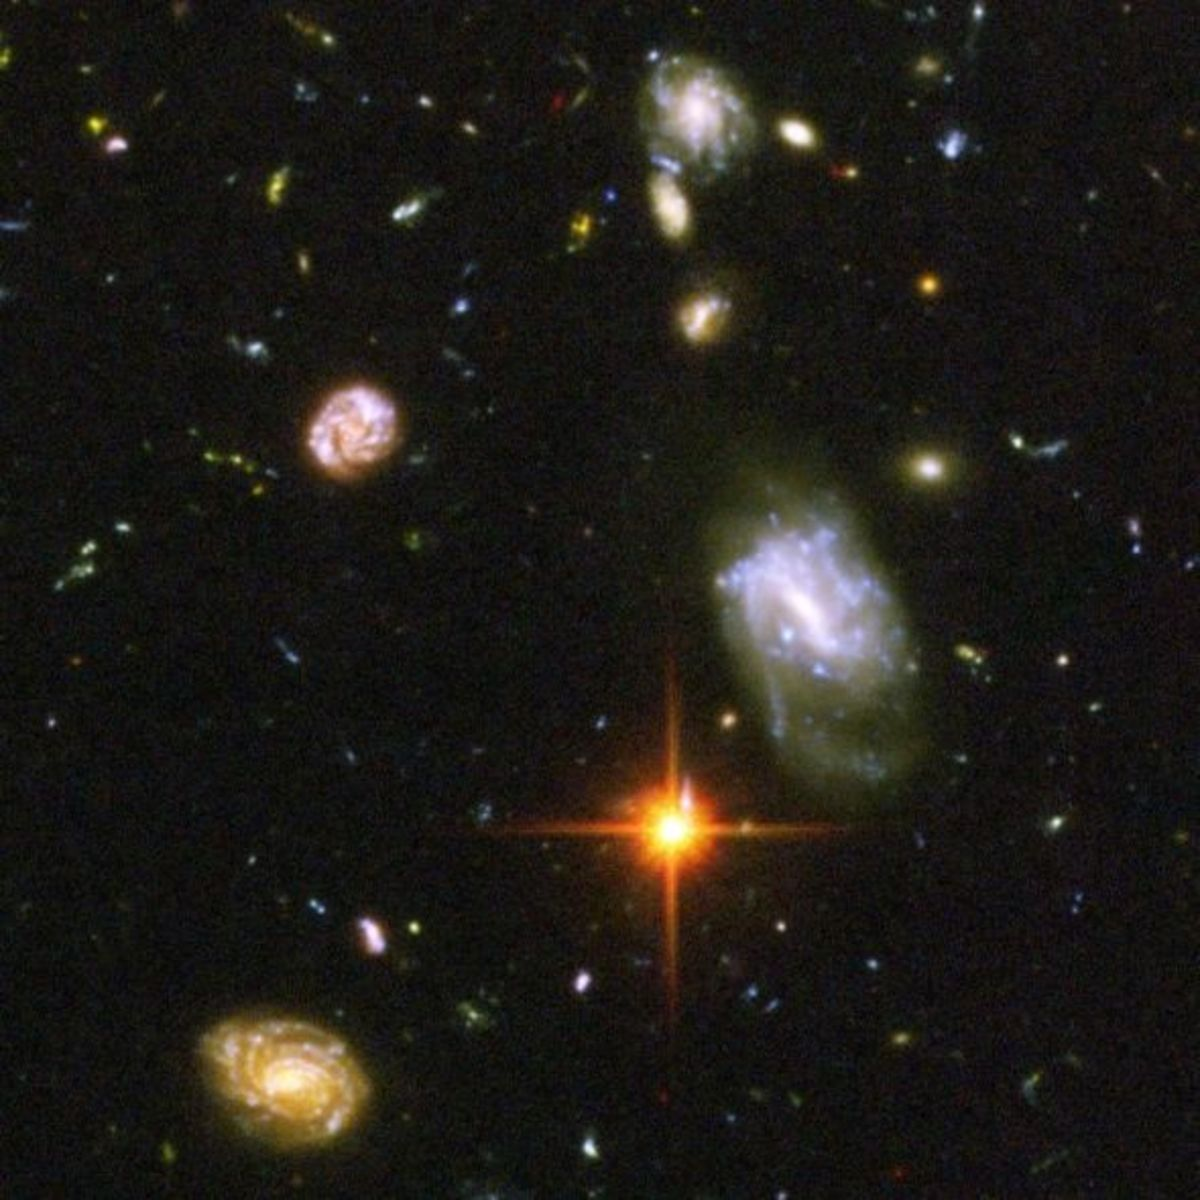 Many far-away galaxies and one foreground star from our own Milky Way.